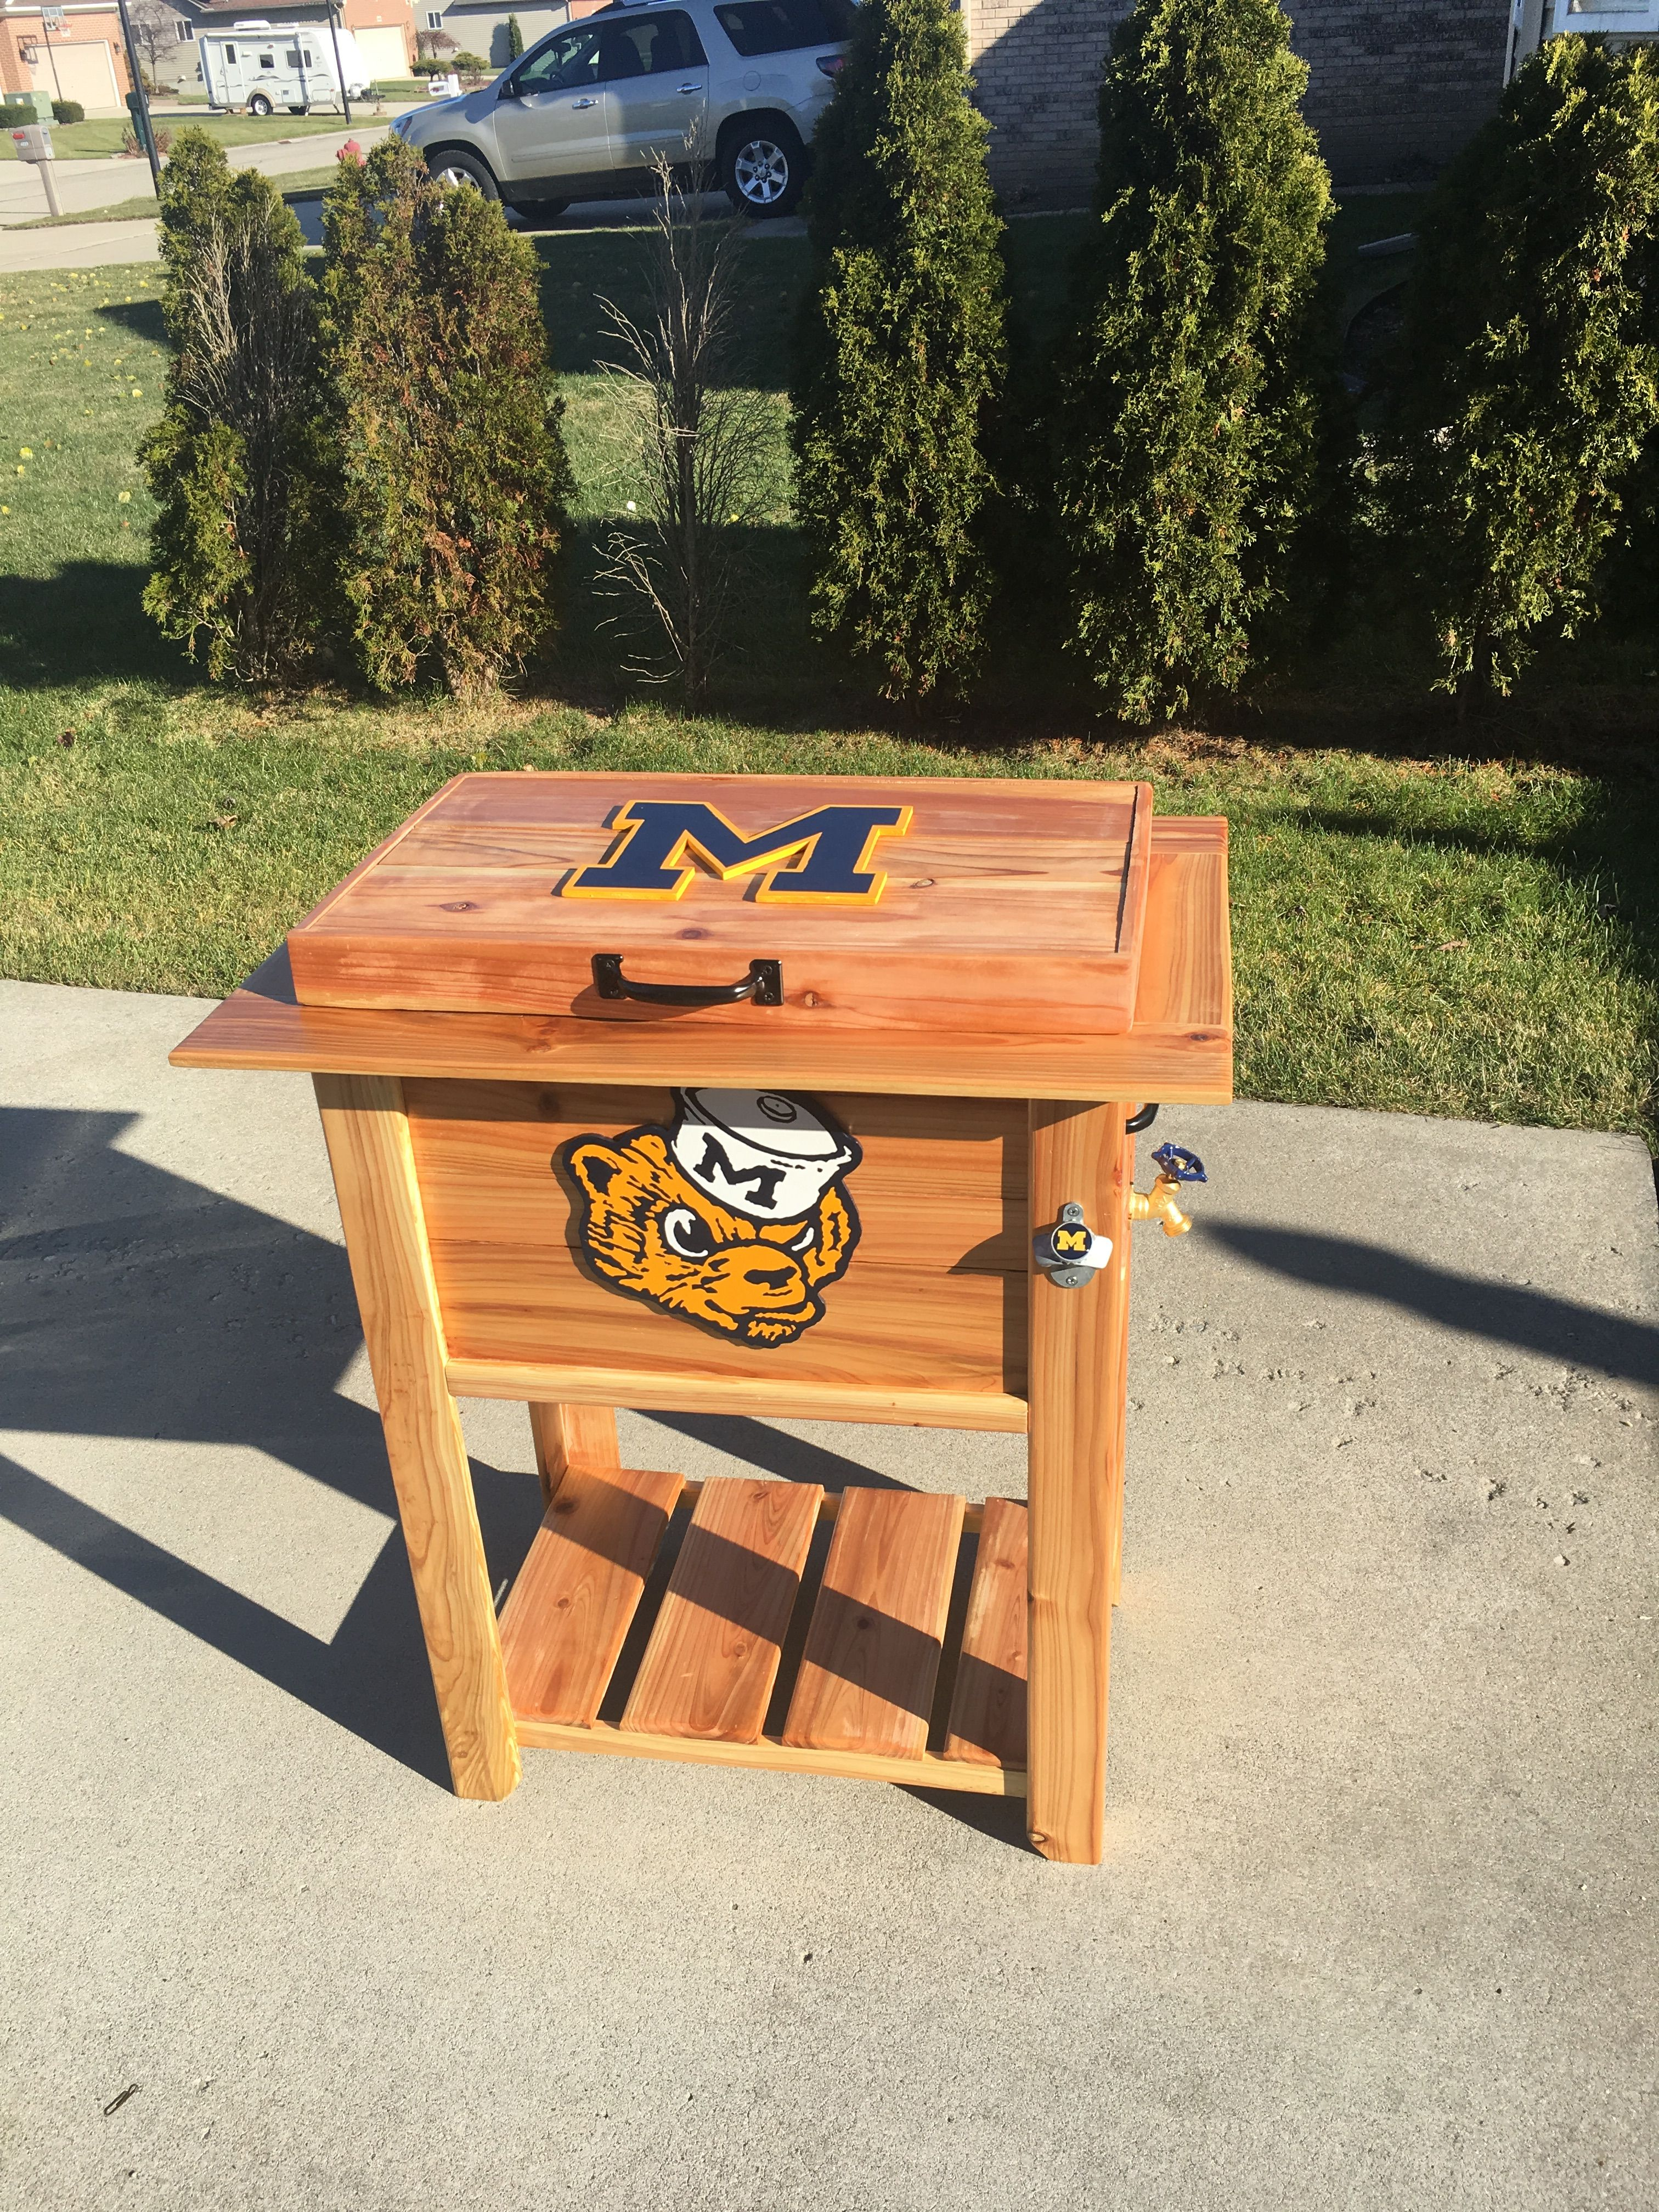 University Of Michigan Patio Deck Cooler Or Ice Chest Made From Cedar Fence Pickets Includes A 48 Deck Cooler University Of Michigan Logo Cedar Fence Pickets